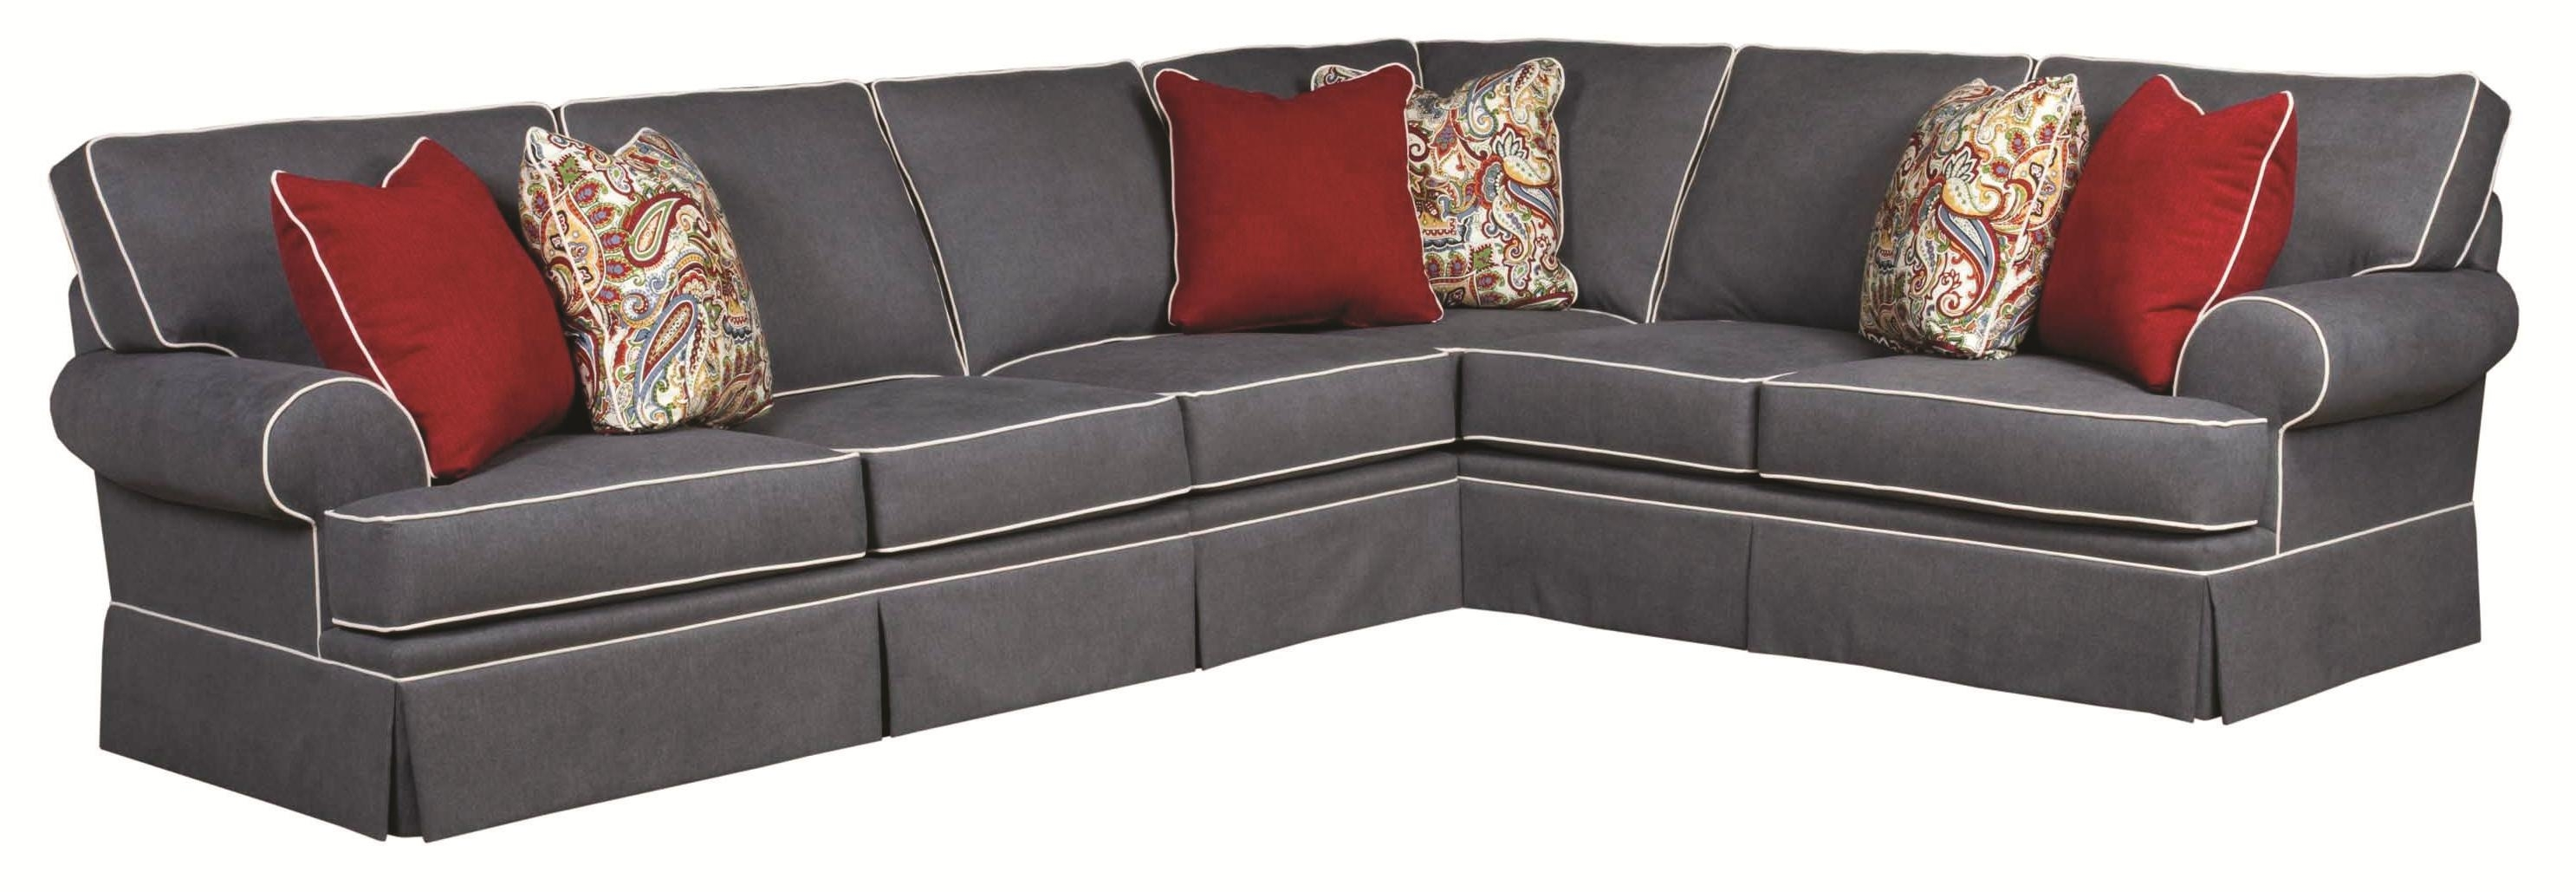 Broyhill Furniture Emily Traditional 3 Piece Sectional Sofa With Regarding Sam Levitz Sectional Sofas (View 10 of 10)